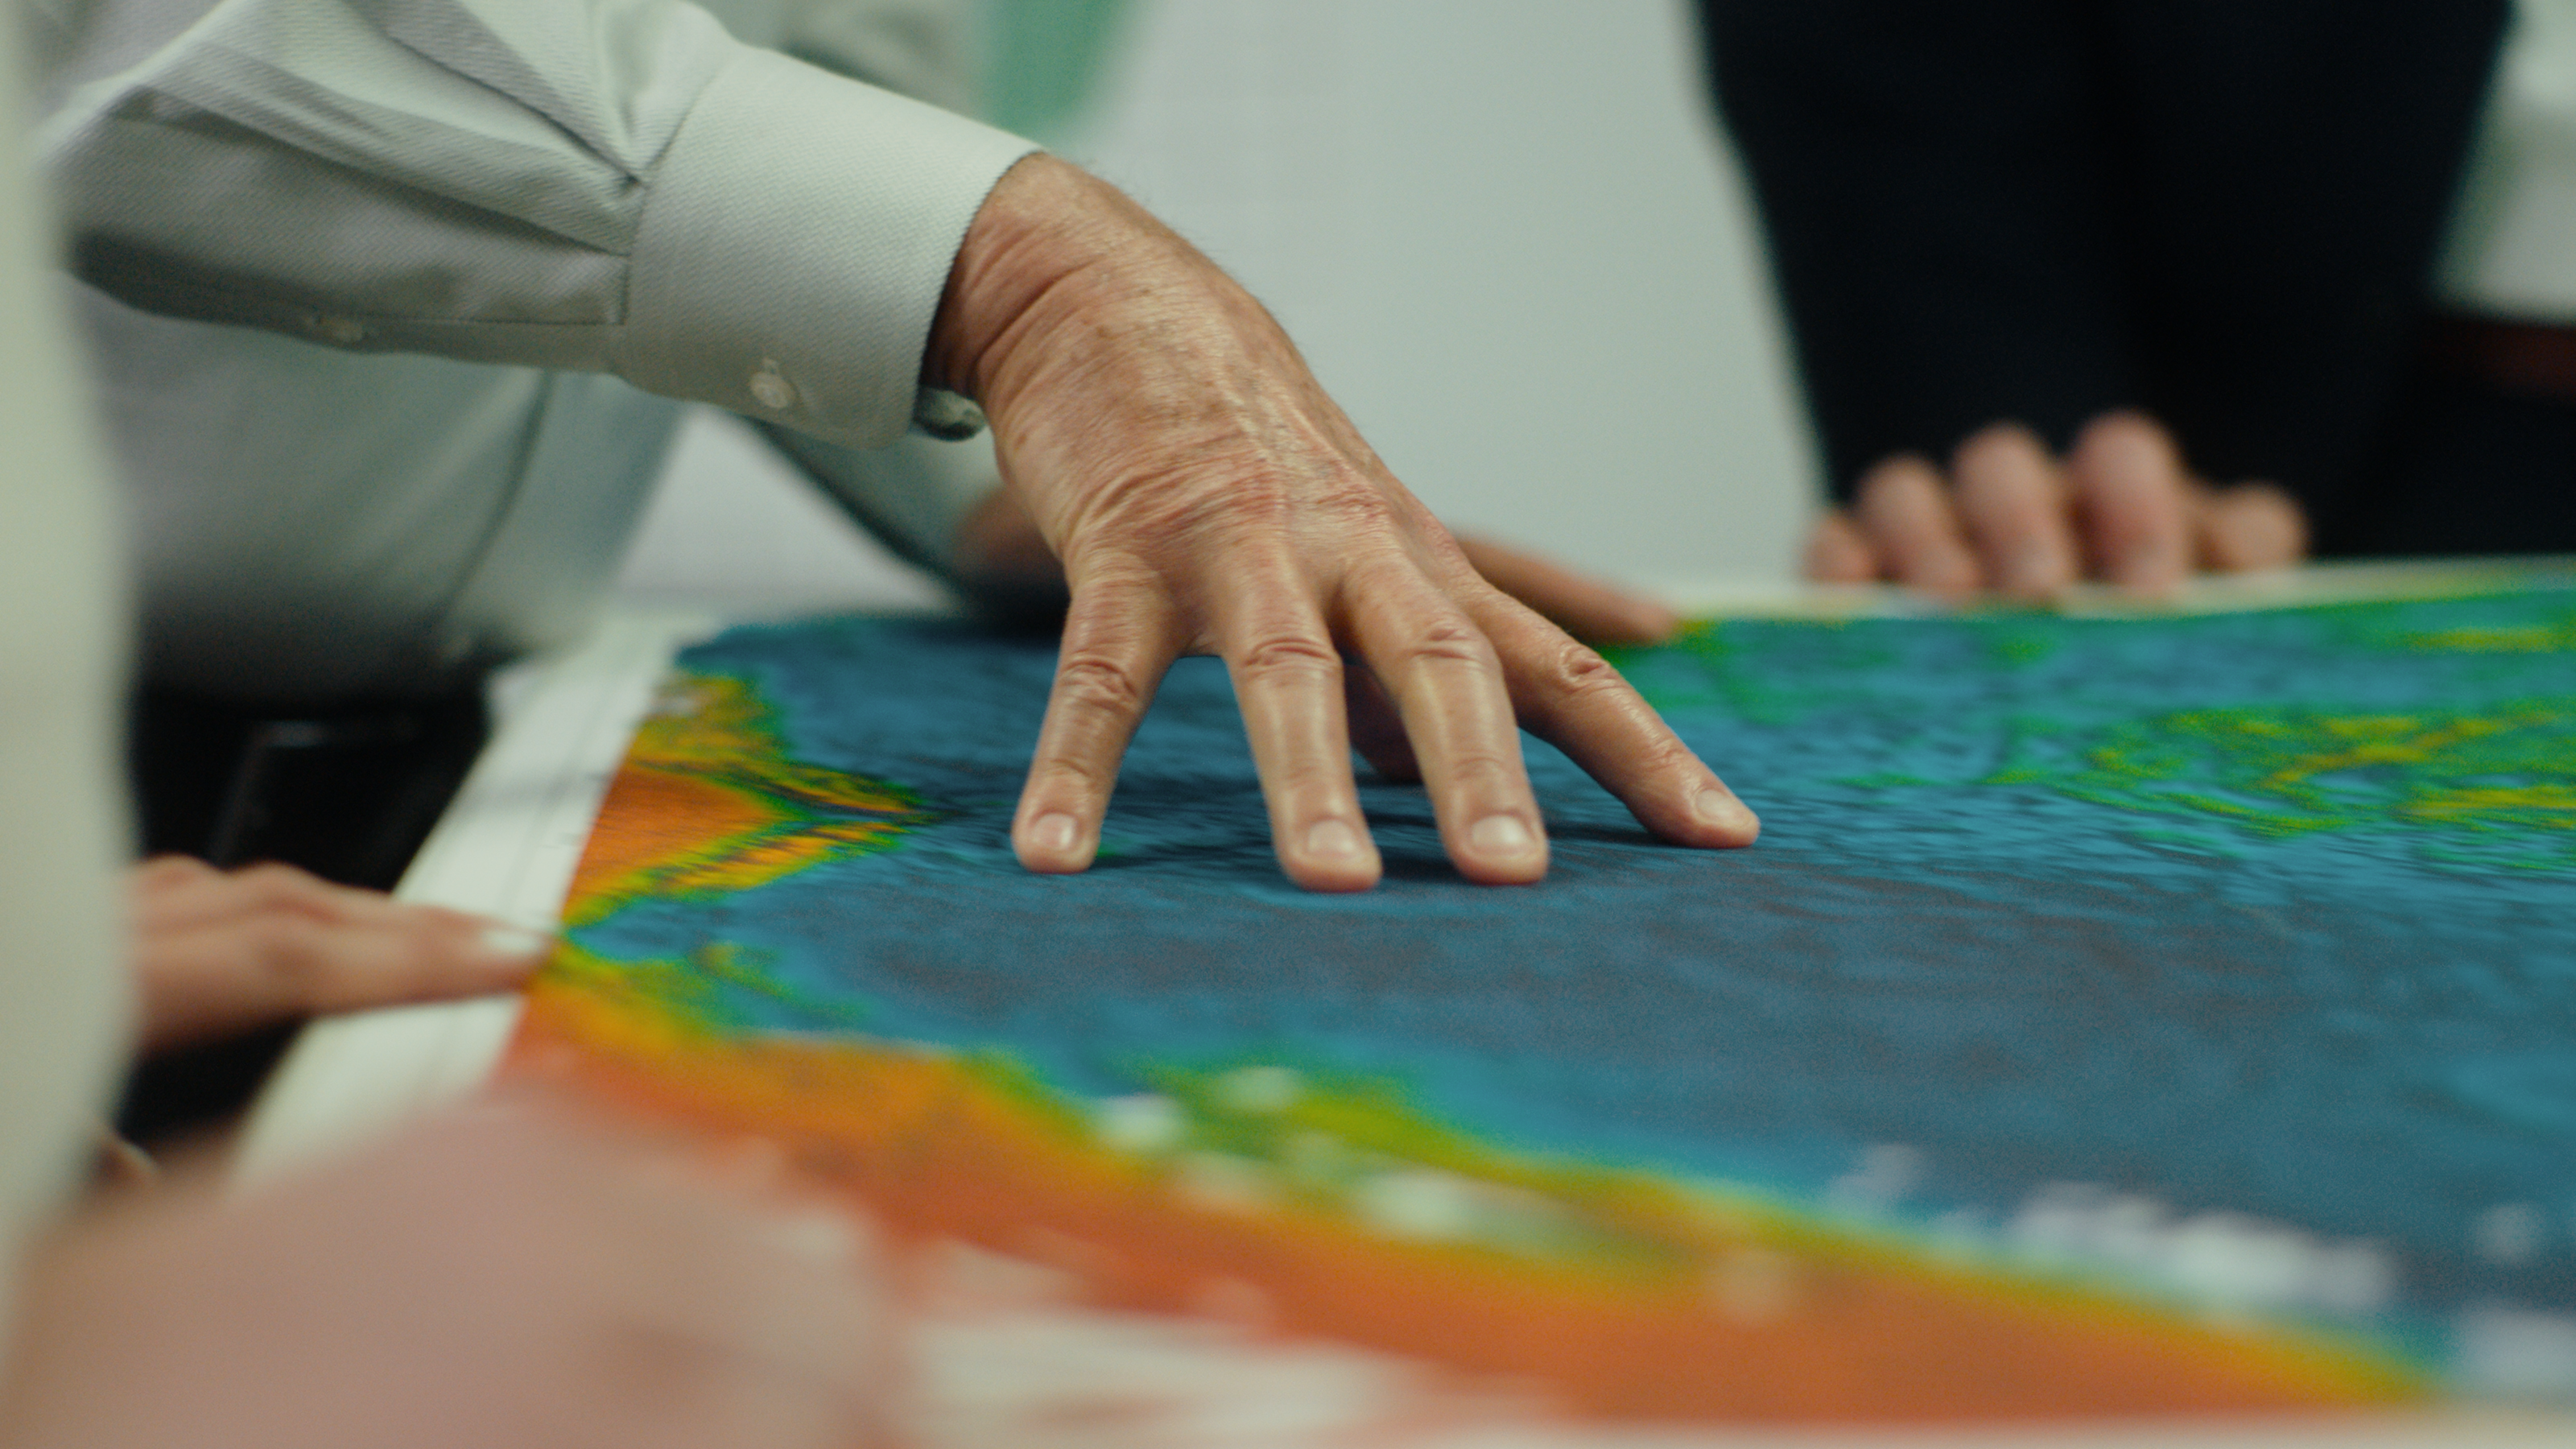 fingers pointing to plots on a map